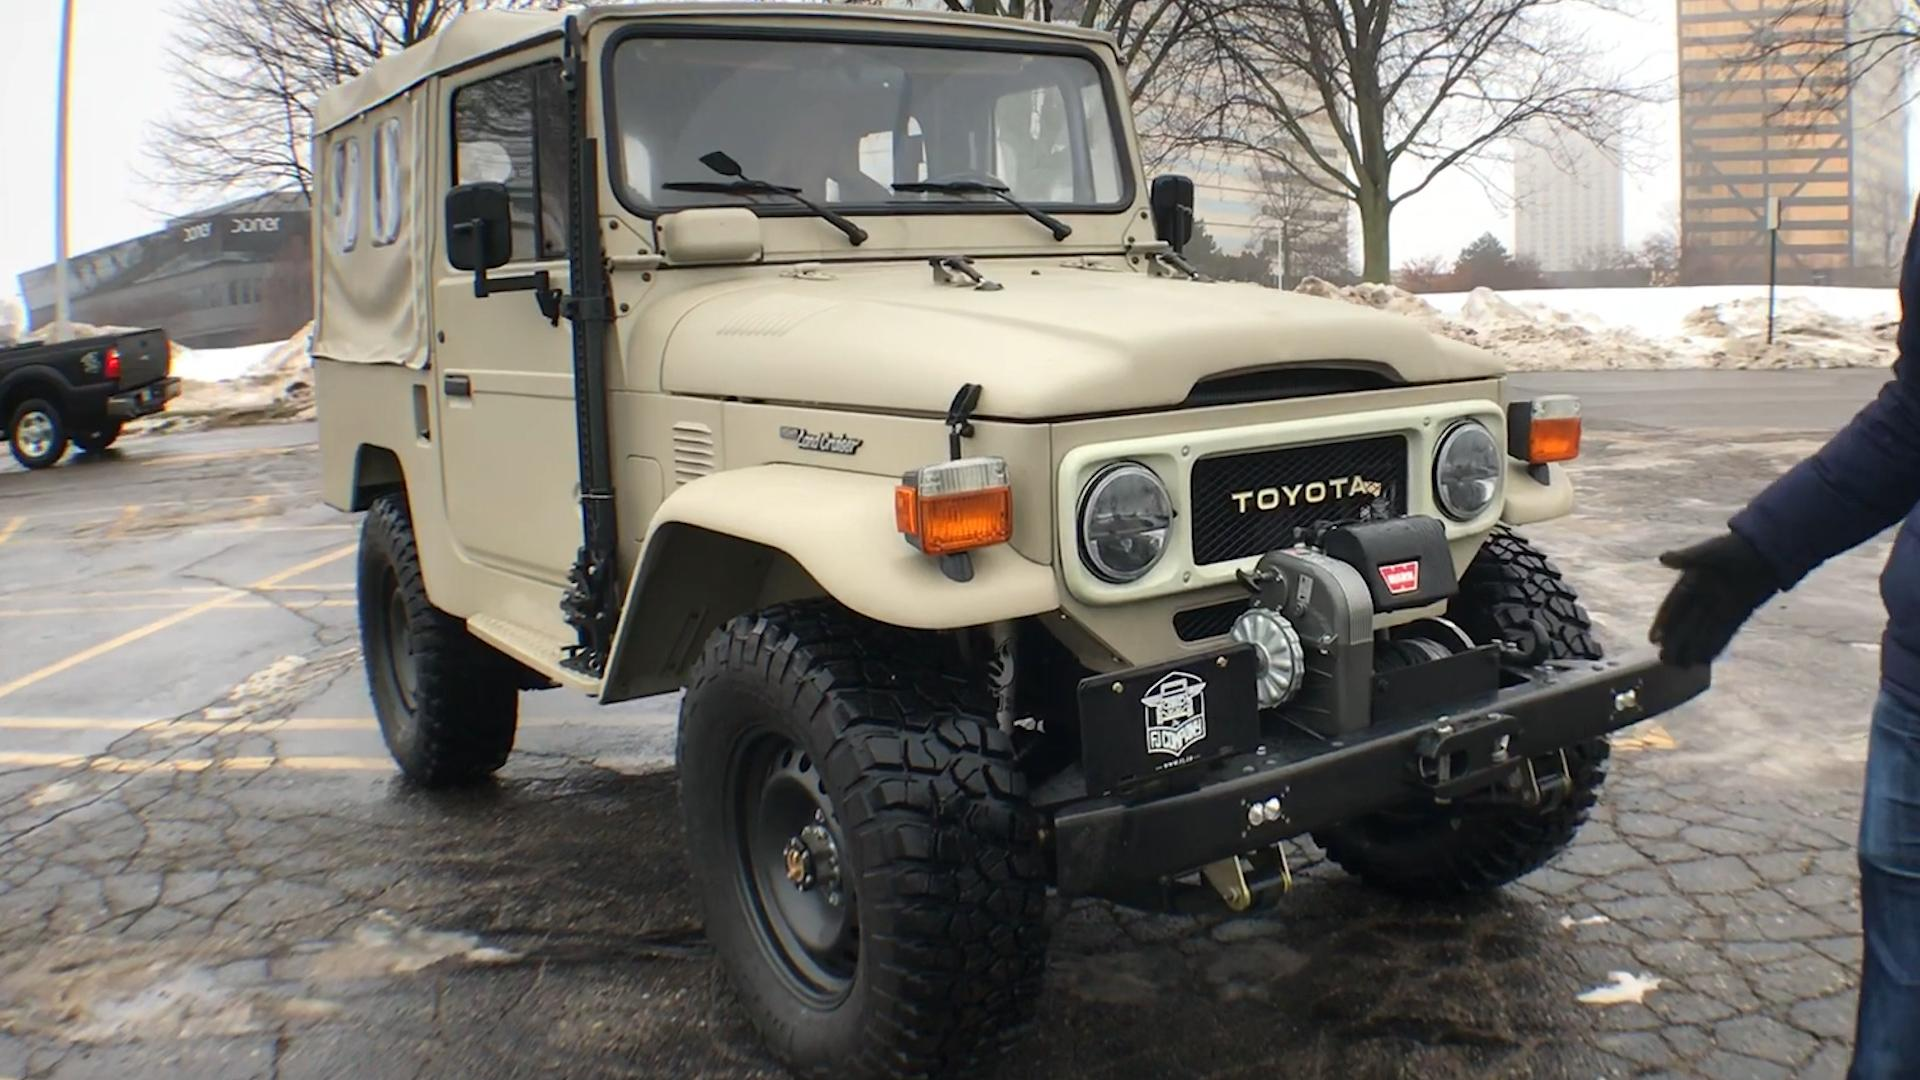 FJ Company Toyota Land Cruiser: $200,000 restomod off-roader review